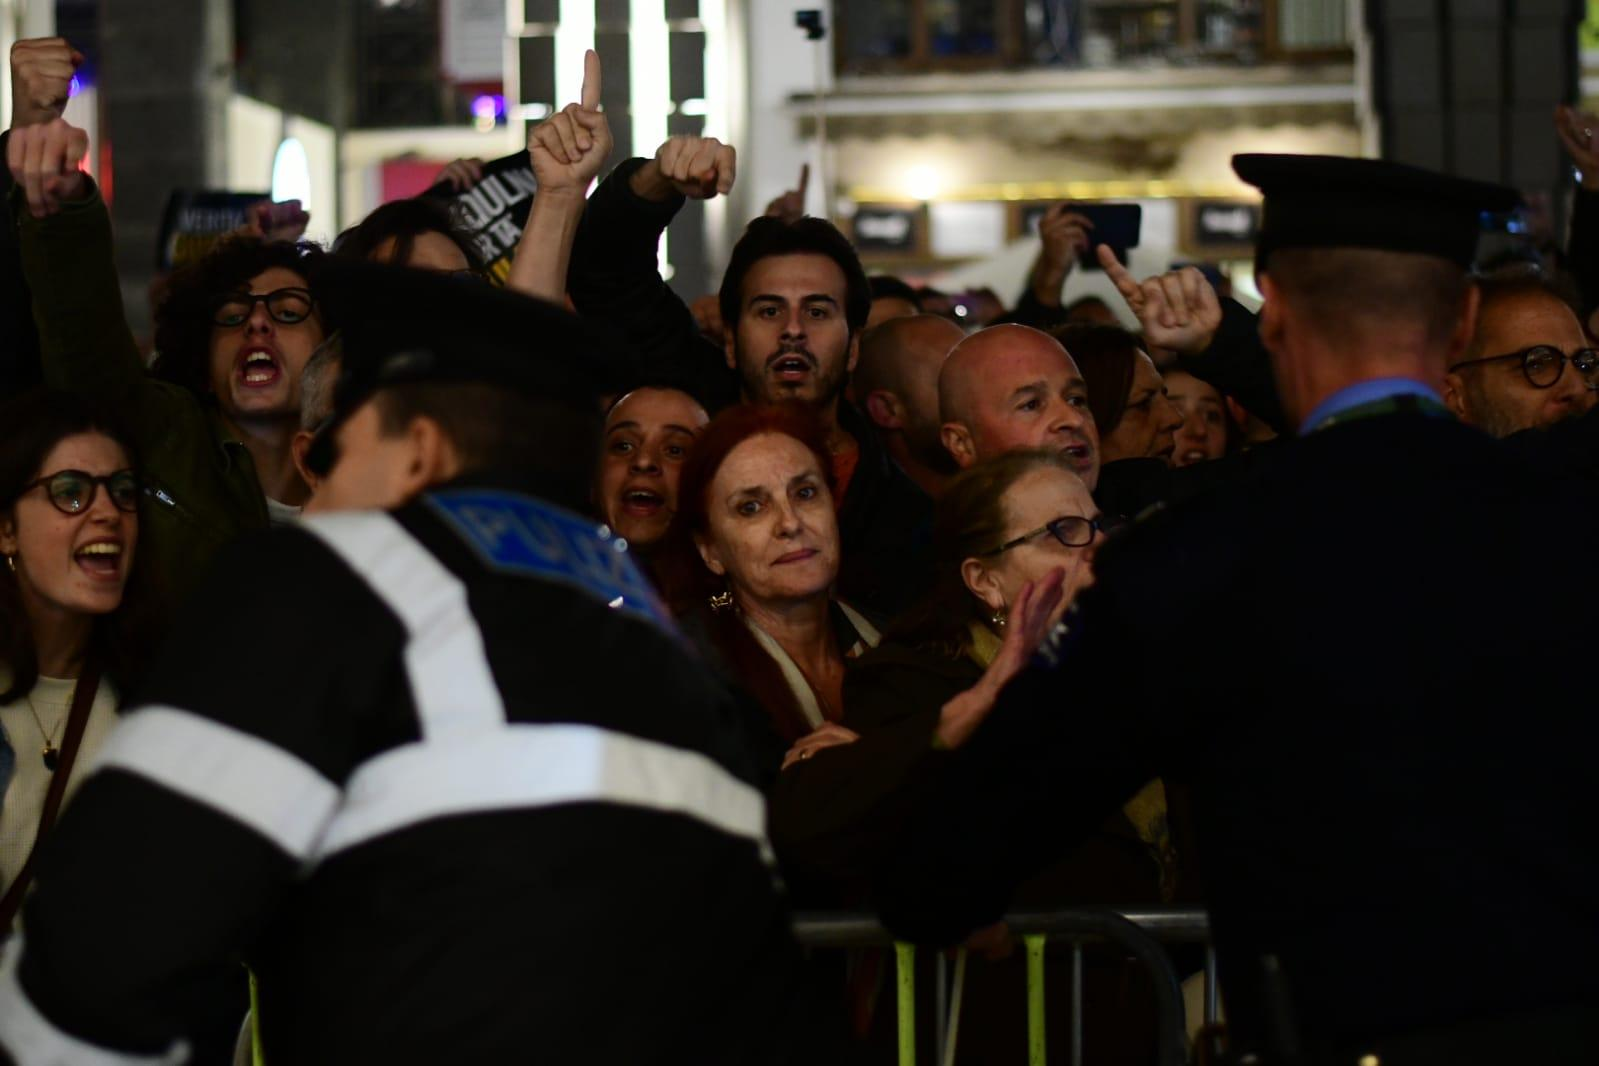 Police keep an eye on protesters in Valletta on Tuesday evening. Photo: Jonathan Borg